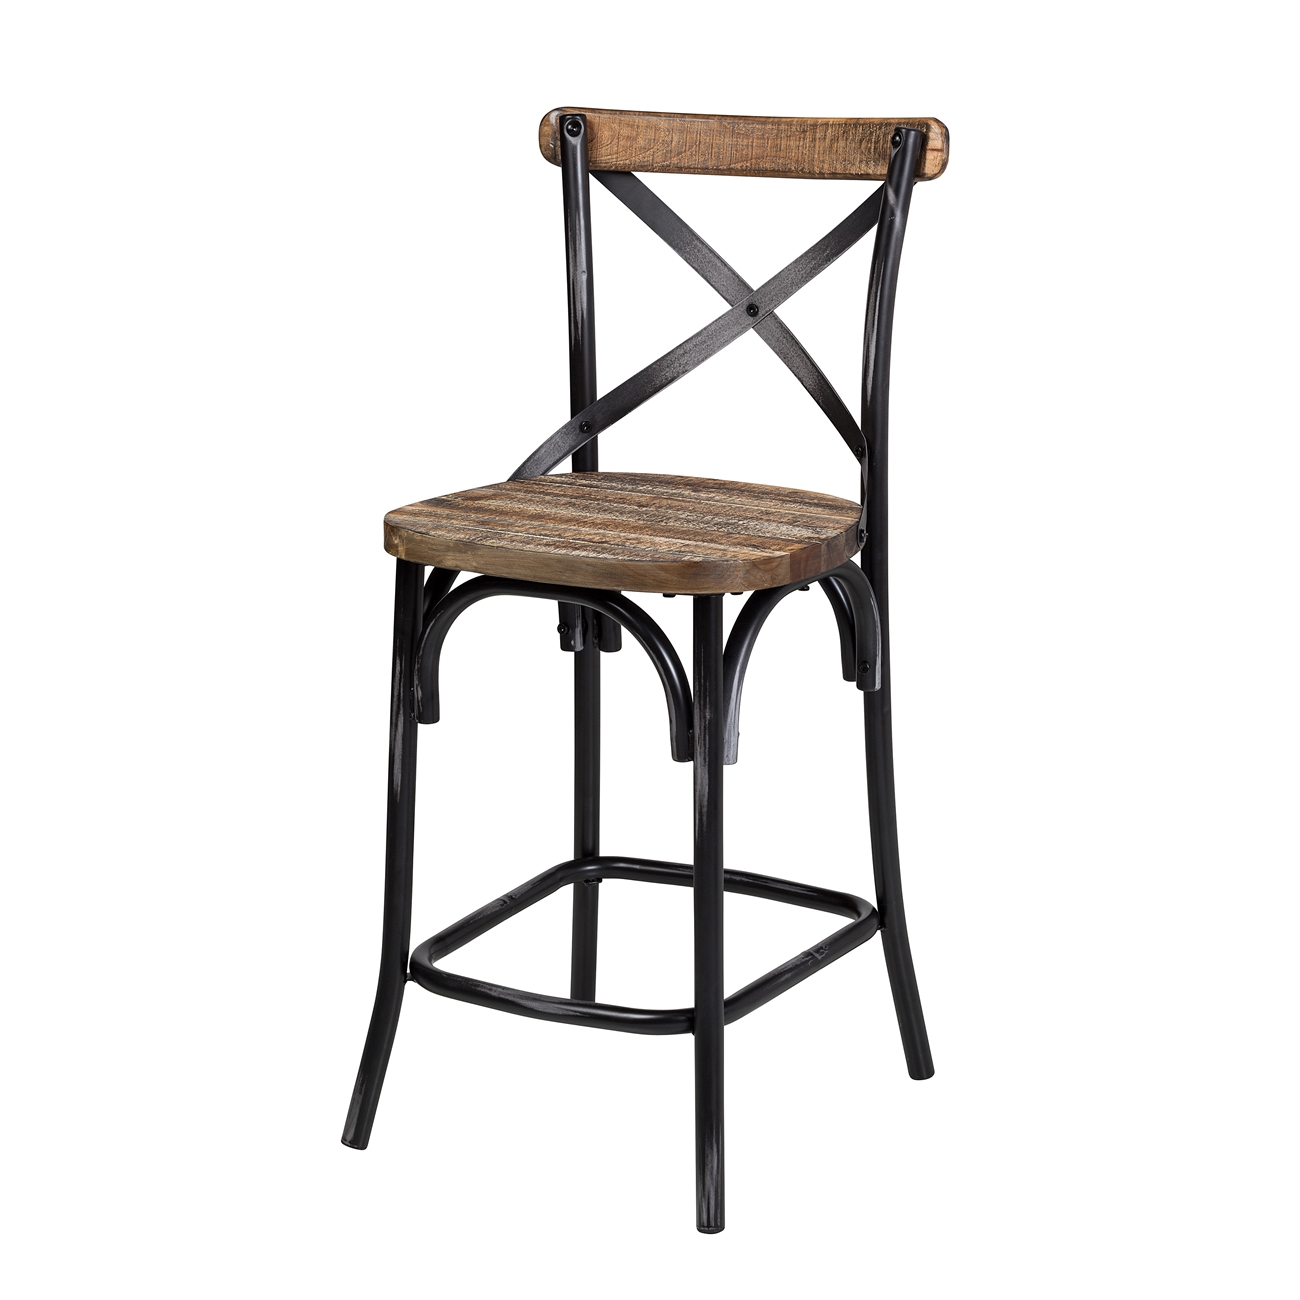 Rustic Reclaimed Pine Counter Stool Larger Photo Email A Friend